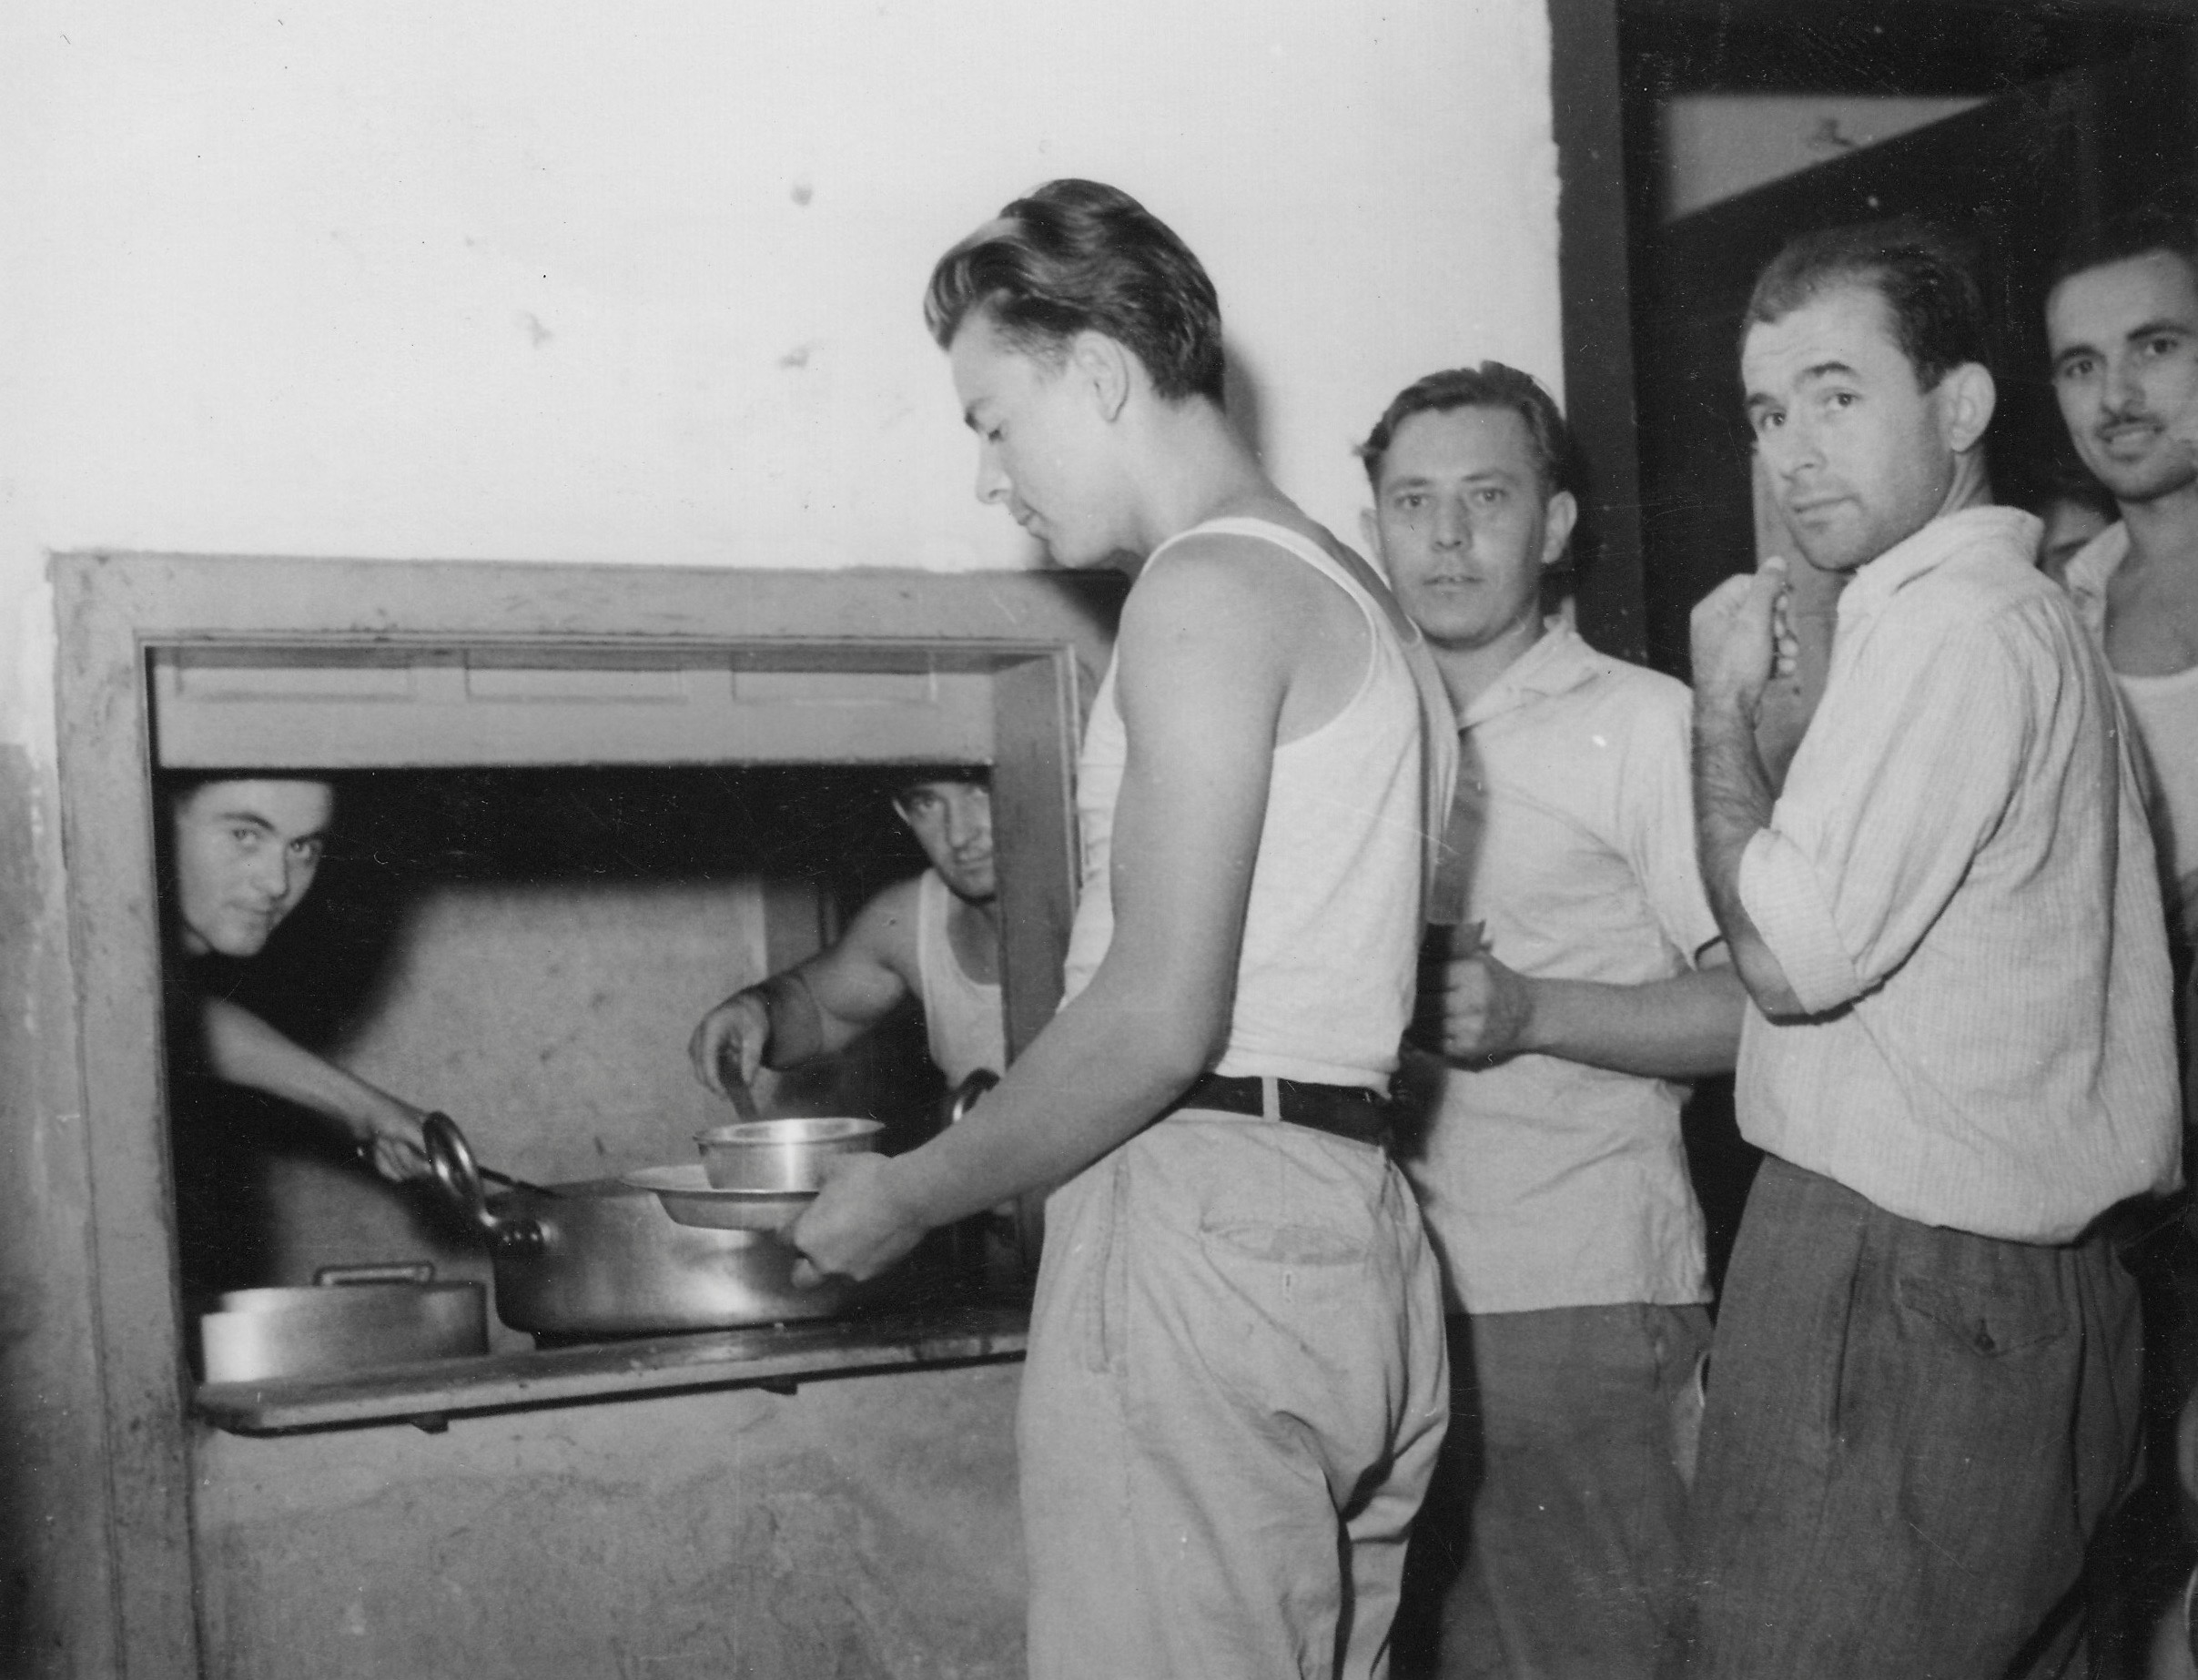 Gesuiti camp, soup and beans for dinner 1950-51